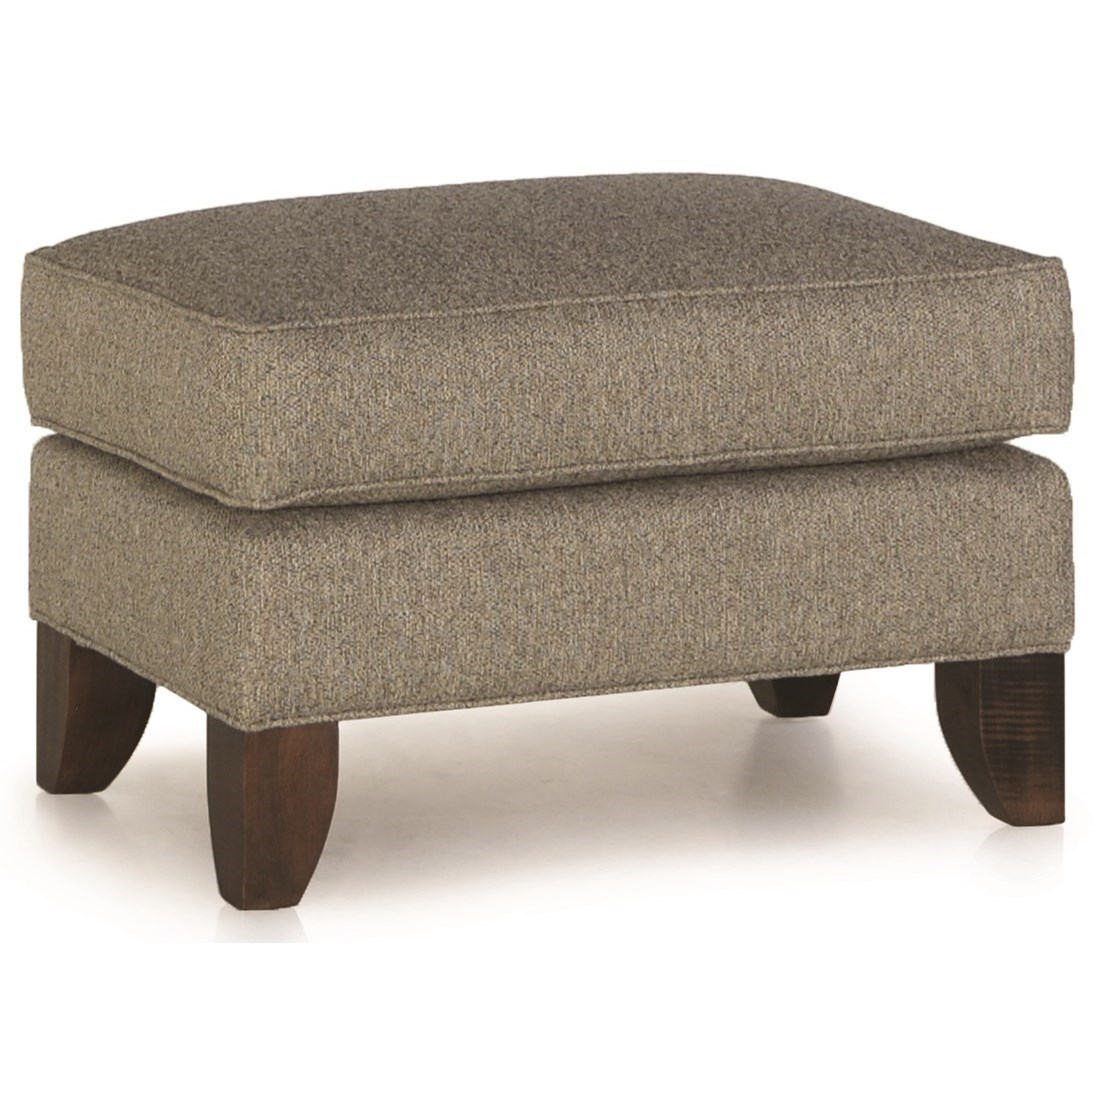 344 Ottoman by Smith Brothers at Turk Furniture